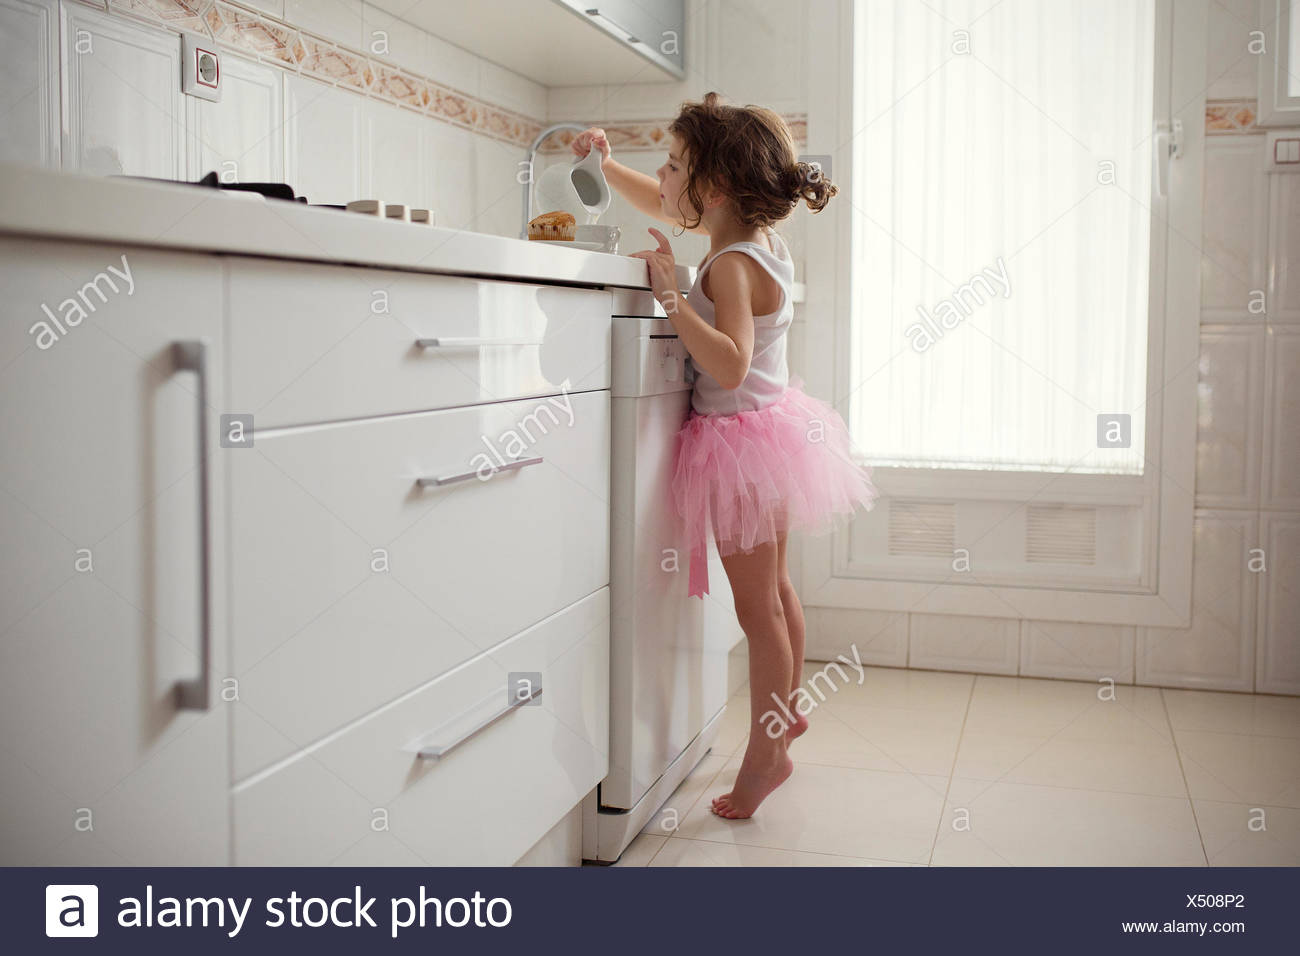 Girl in tutu standing in kitchen pouring milk into a cup - Stock Image